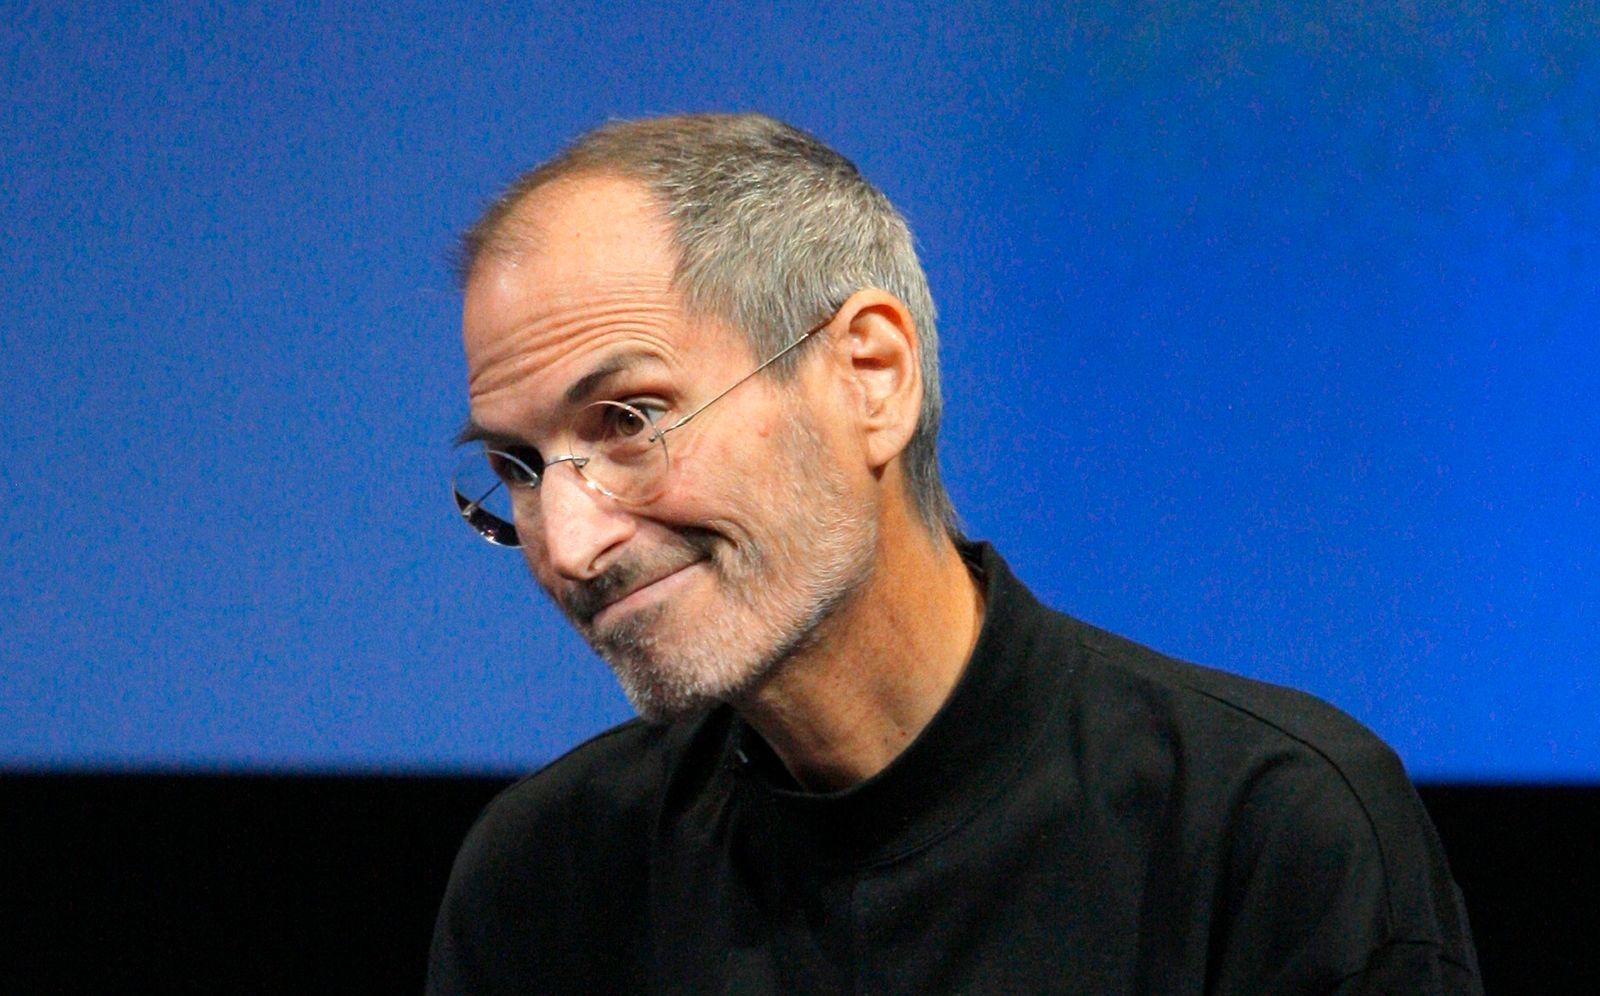 Apple Inc. CEO Steve Jobs smiles during a Q&A session at the end of the iPhone OS4 special event at Apple headquarters in Cupertino